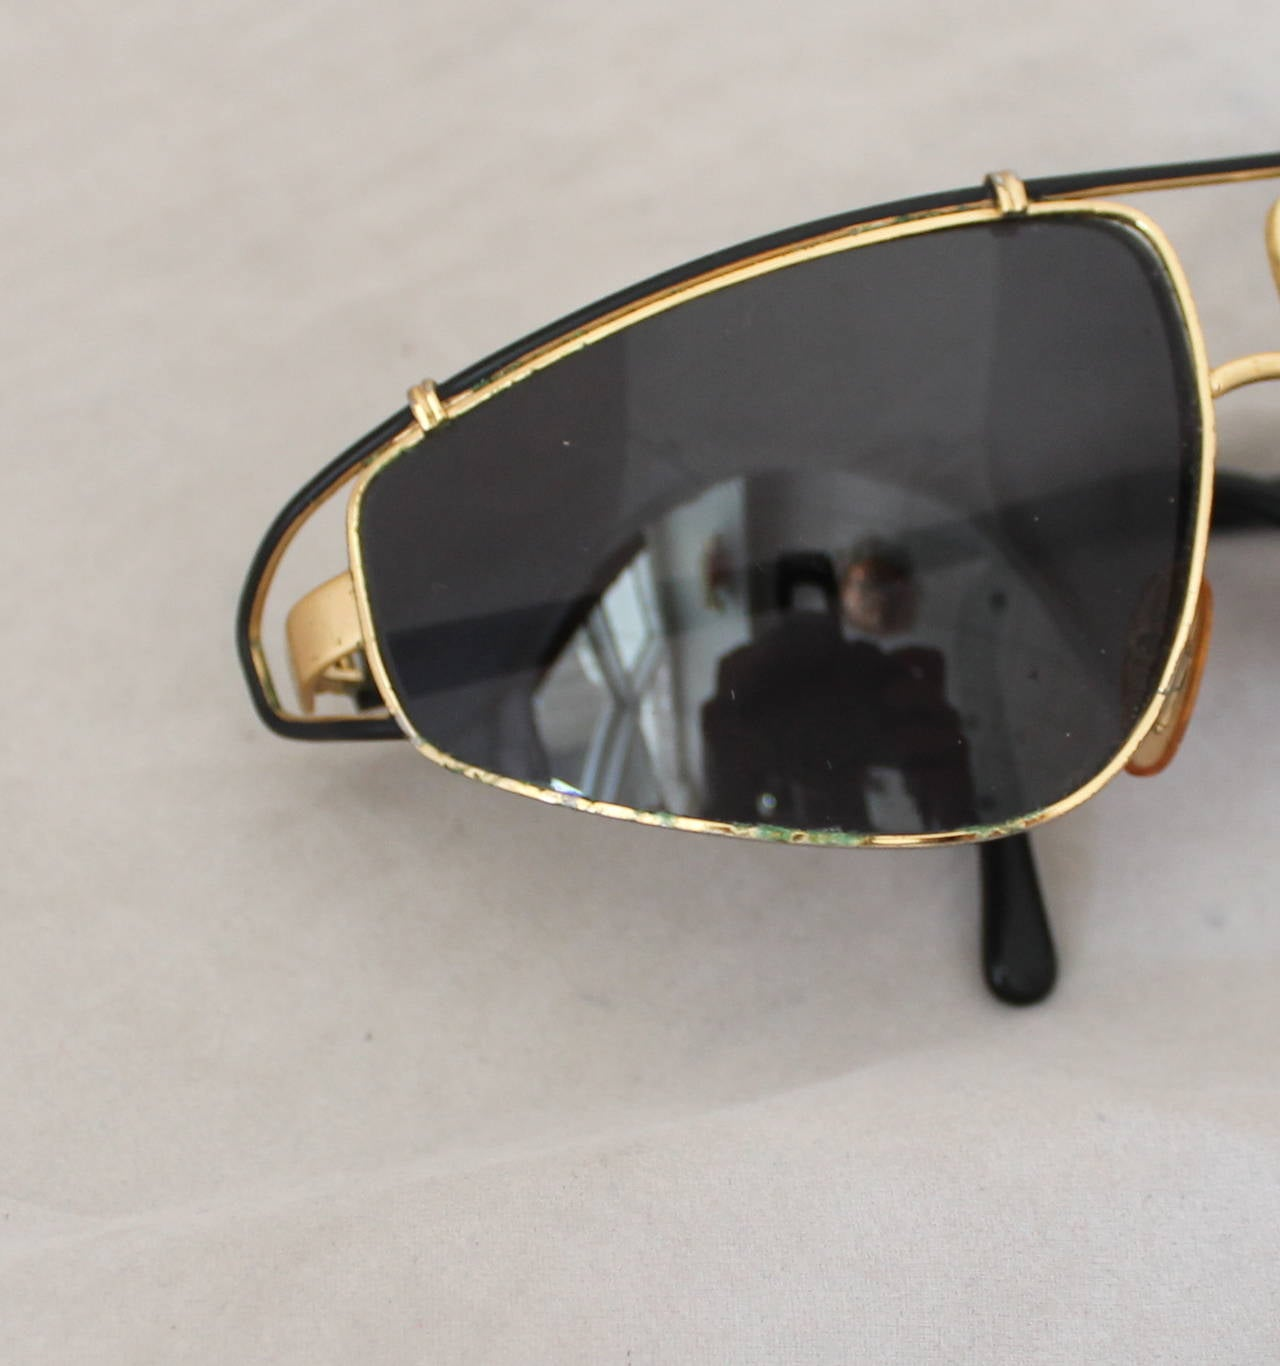 Versace 1980's Vintage Black & Gold Geometric Aviator Sunglasses For Sale 3